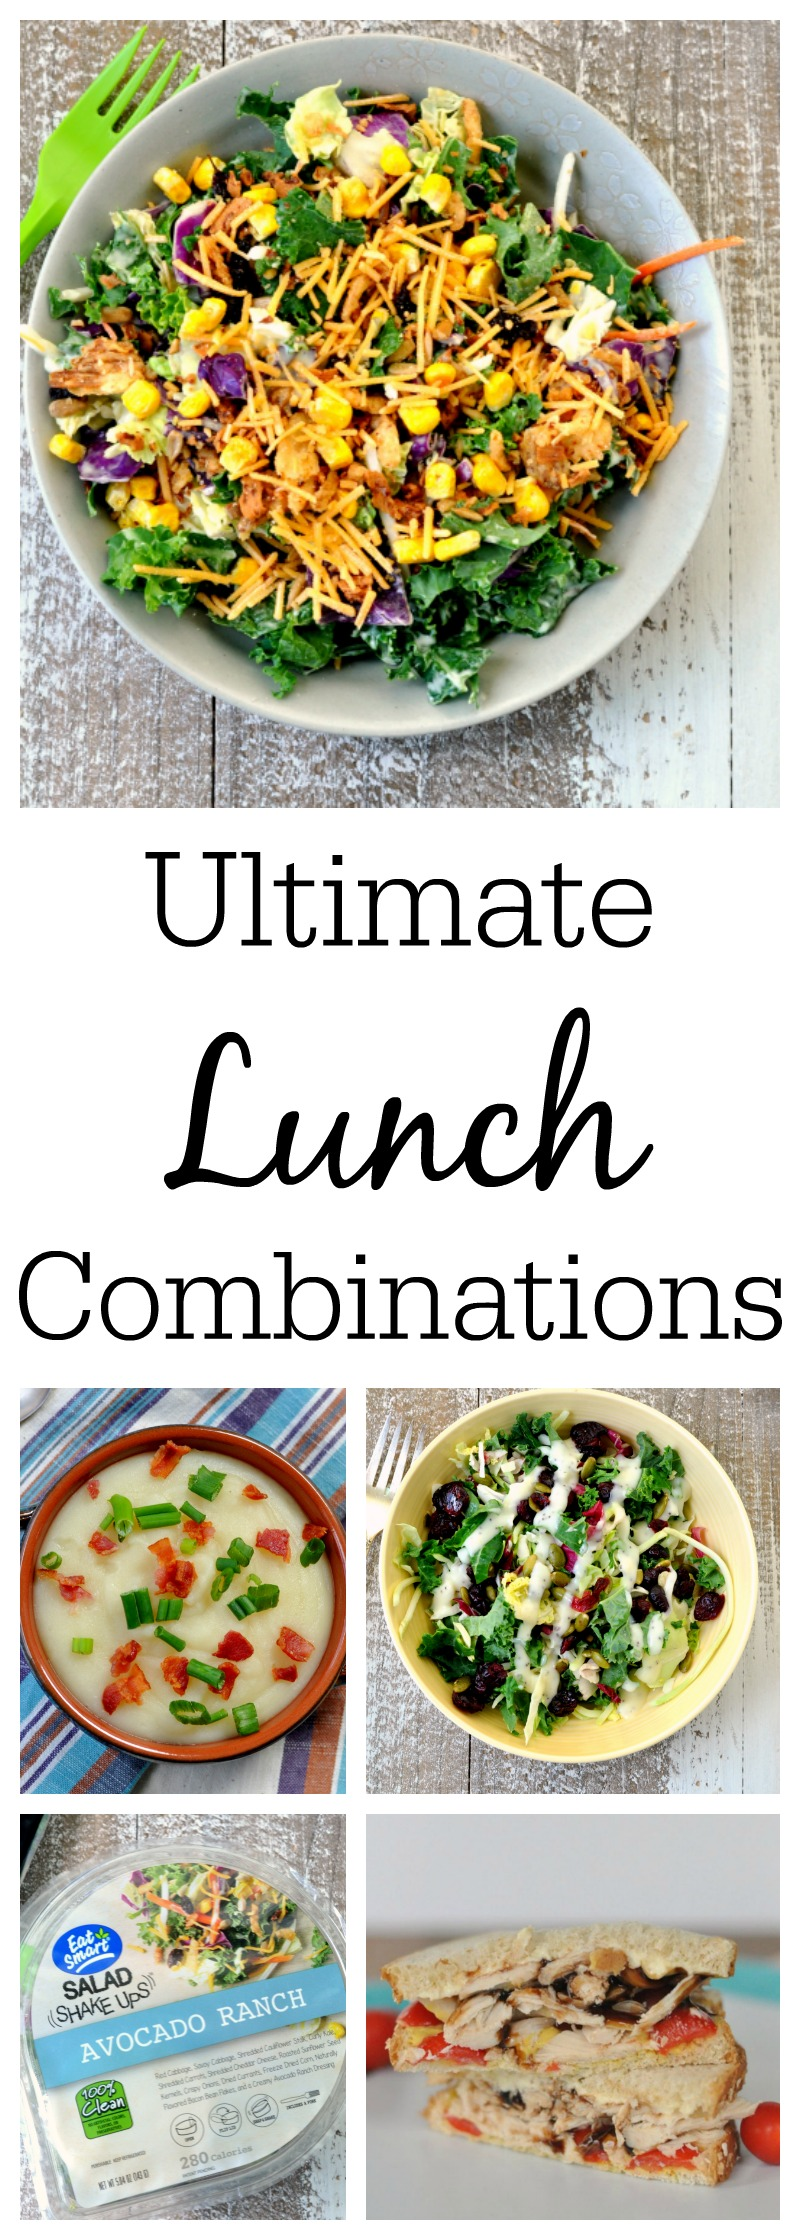 Ultimate Lunch Combinations